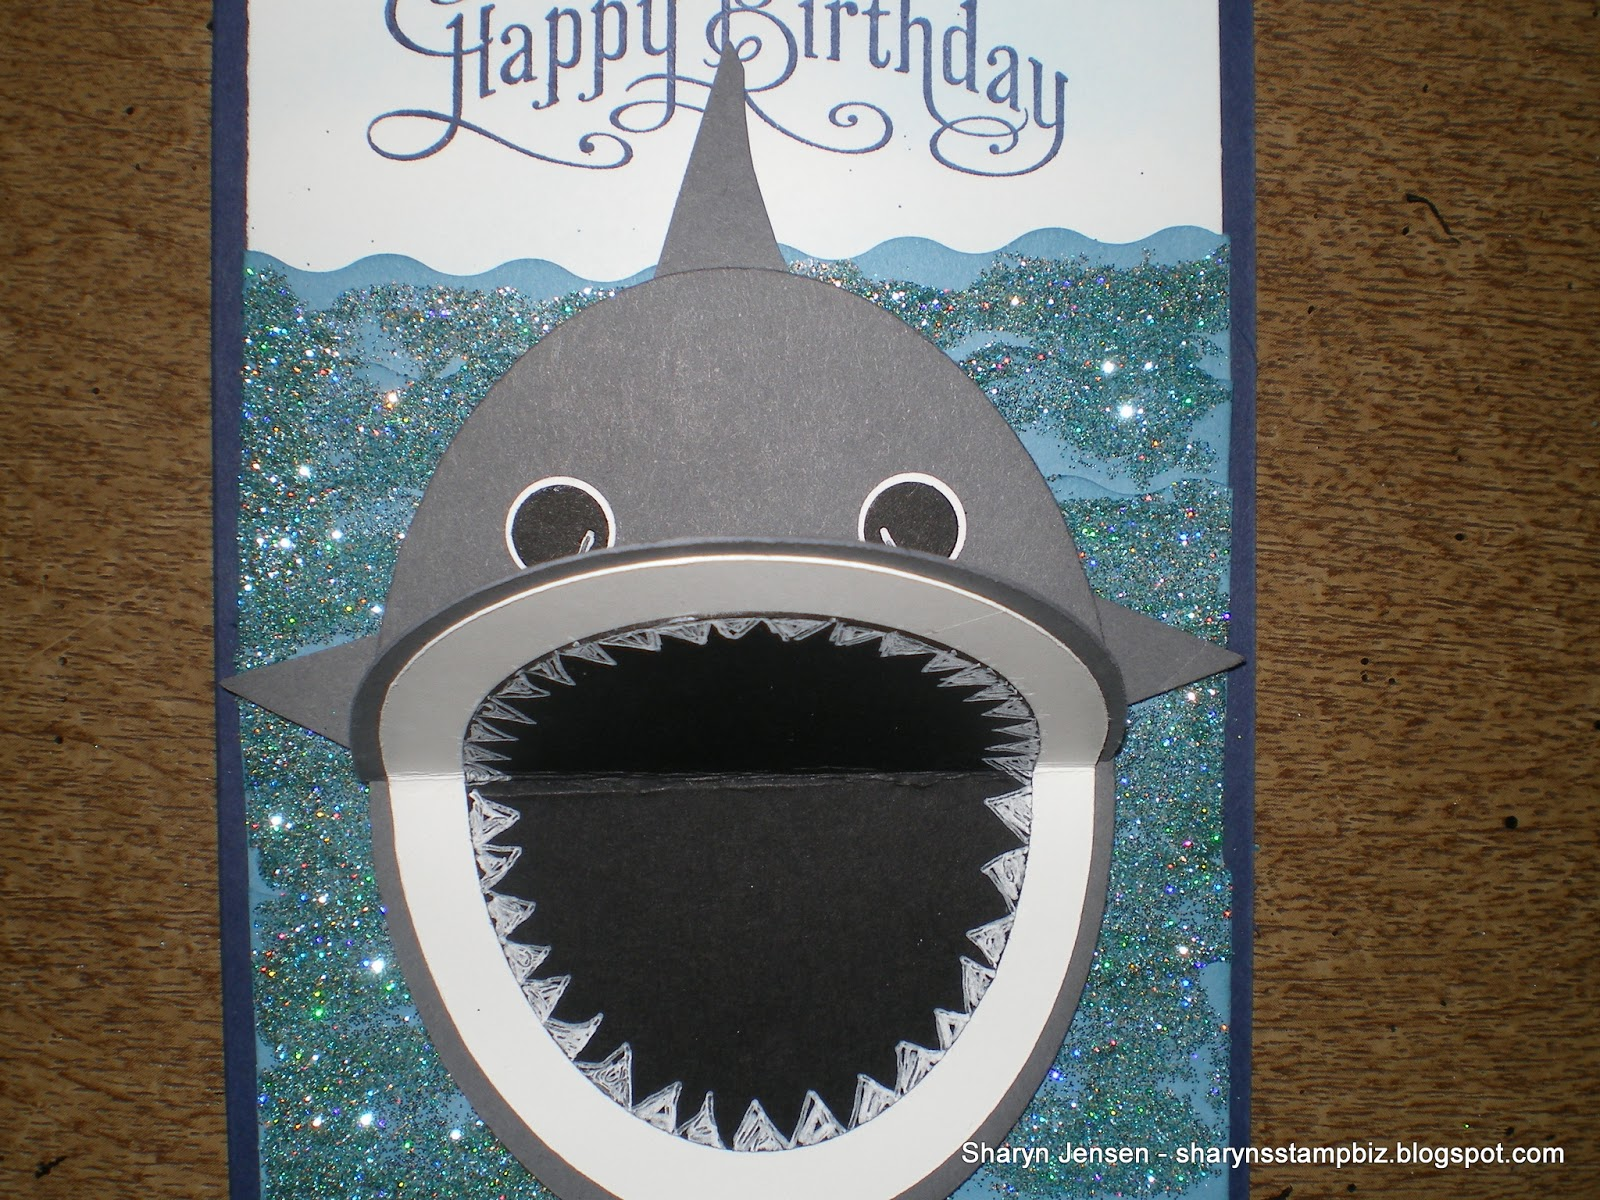 8 year old boy birthday card ideas ; 12-year-old-boy-birthday-card-ideas-birthday-card-for-9-year-old-boy-and-get-inspired-to-create-your-own-birthday-card-design-with-this-ideas-6